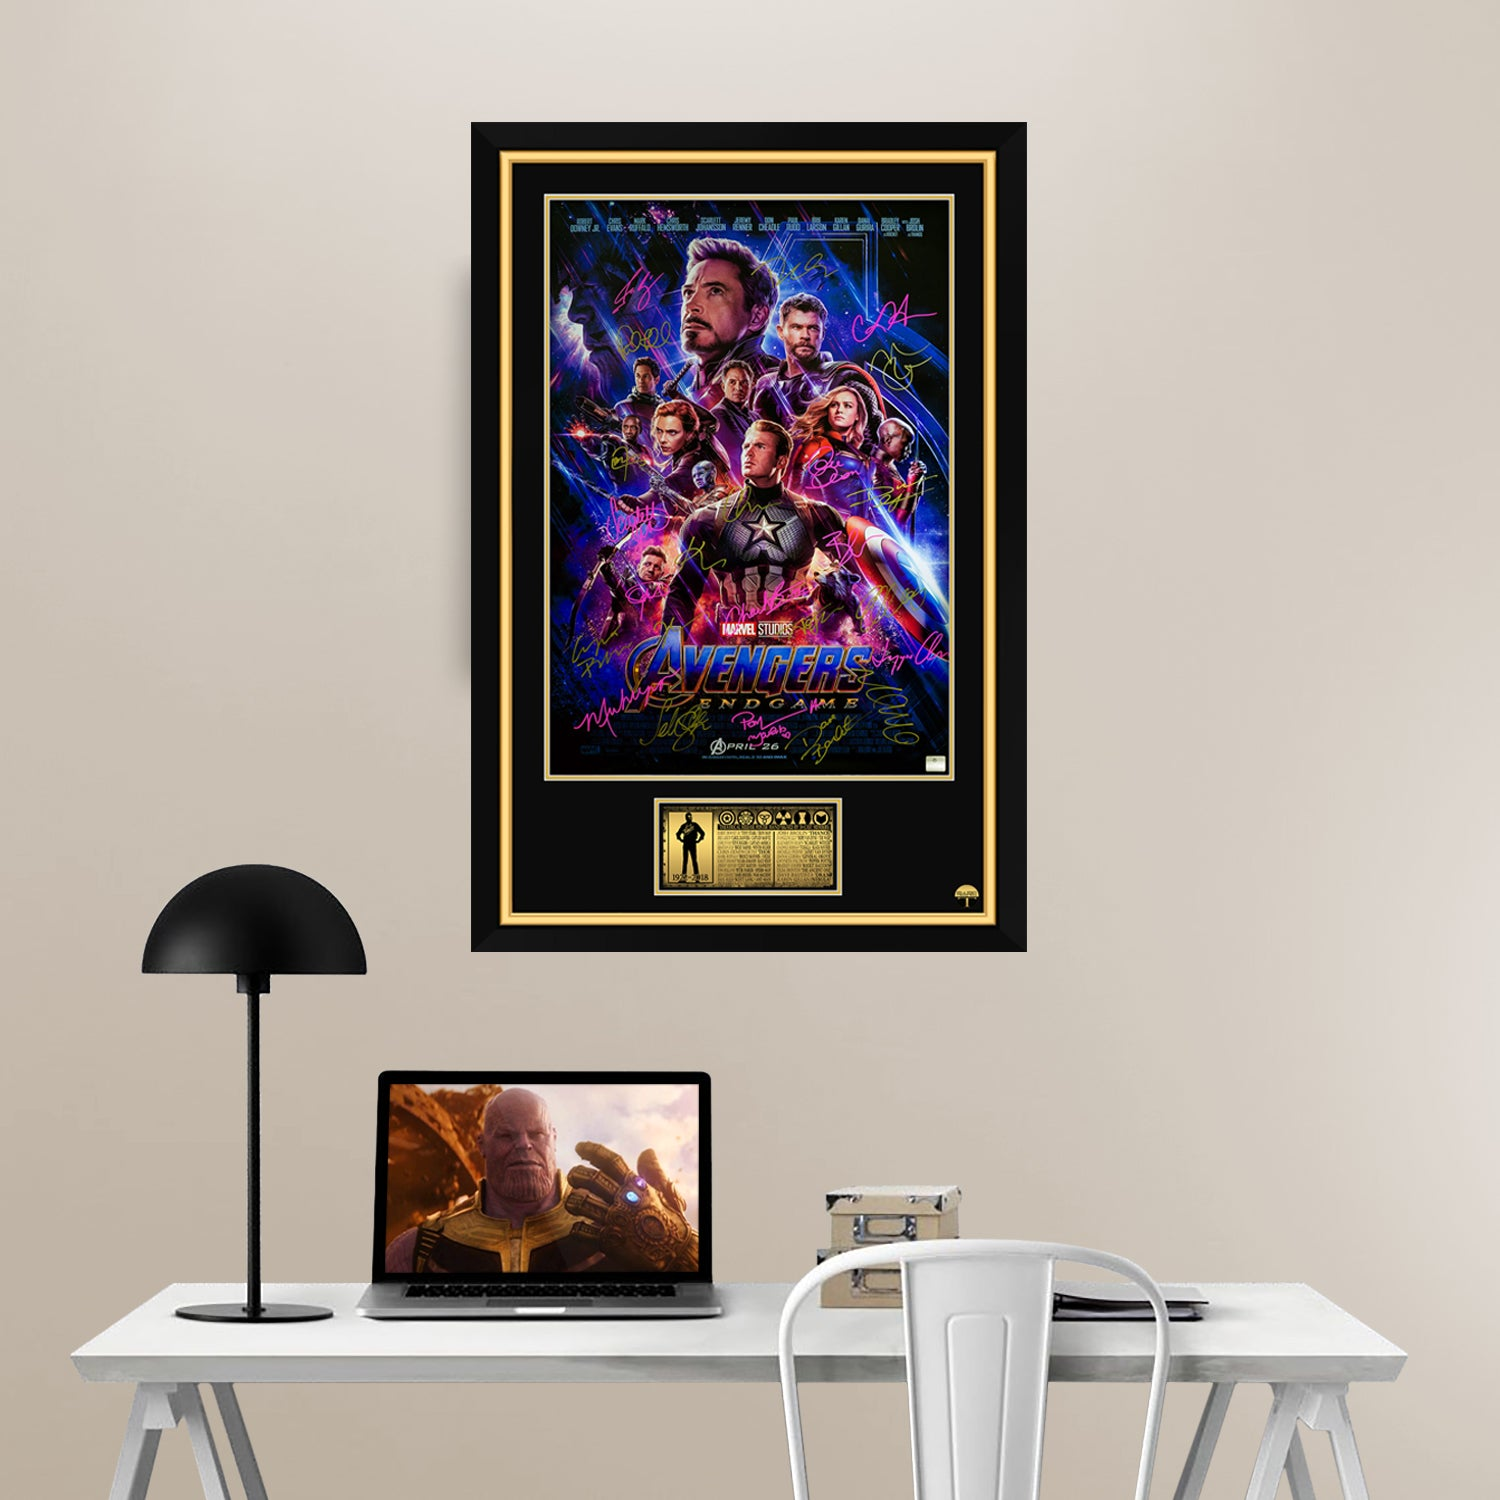 Hand-Signed Theatrical Poster By 24